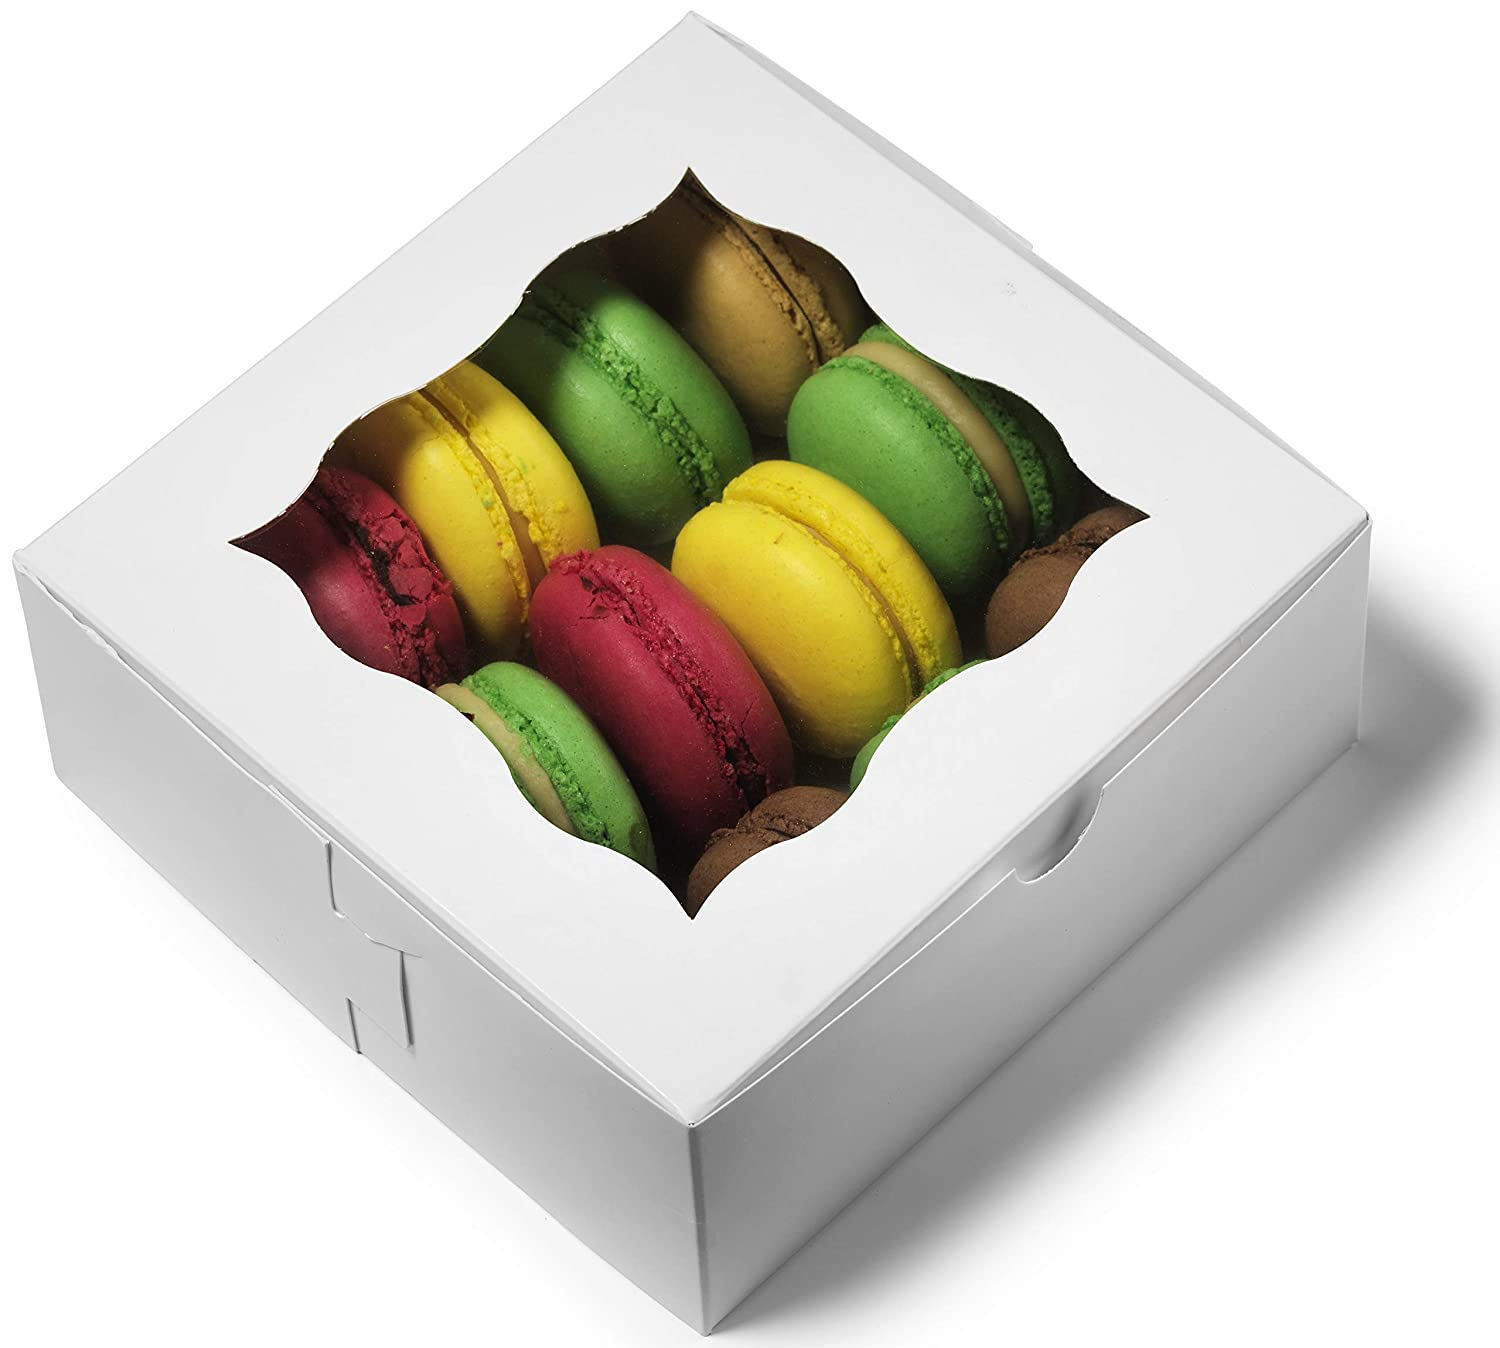 Donut Pies Macaron Pack of 50 Wedding Favors and Dessert Packaging for Cake Gold Baby Shower Cookies and Party Treat Cupcake Gift Box with Window 6x6x2.5 Bakery Boxes Pastry Containers